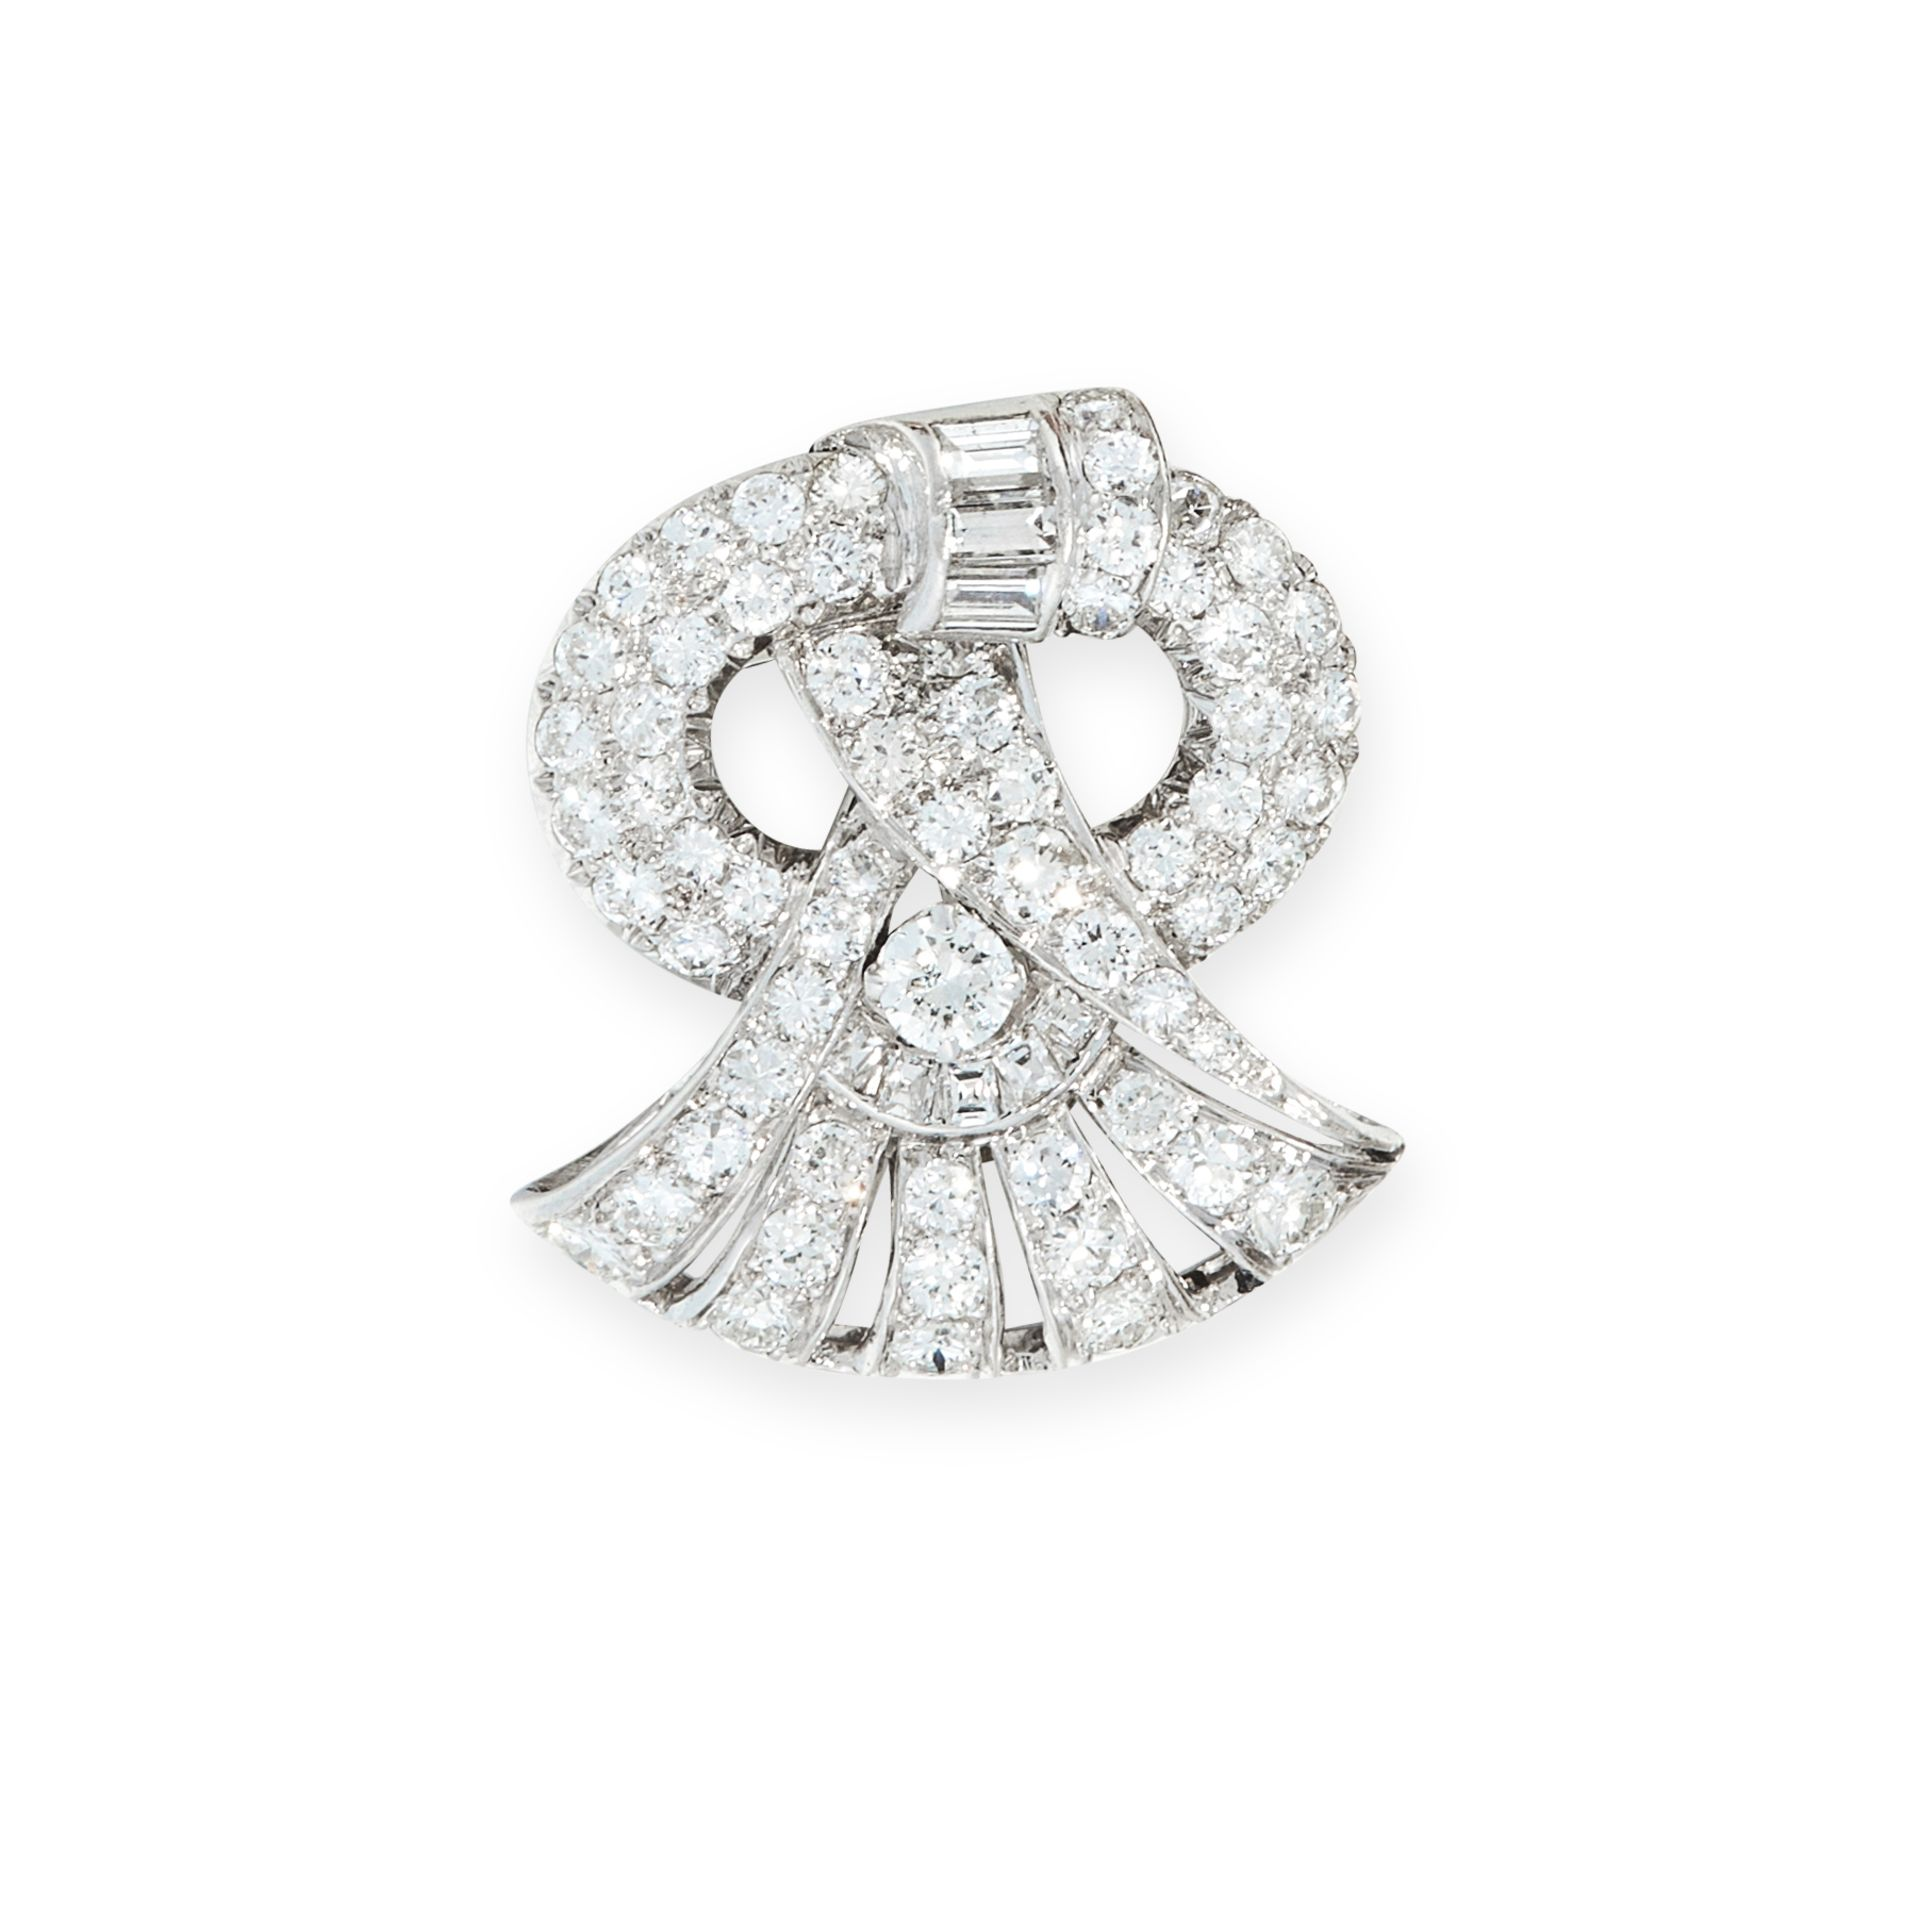 A DIAMOND CLIP BROOCH, EARLY 20TH CENTURY of scrolling design, set throughout with old cut and